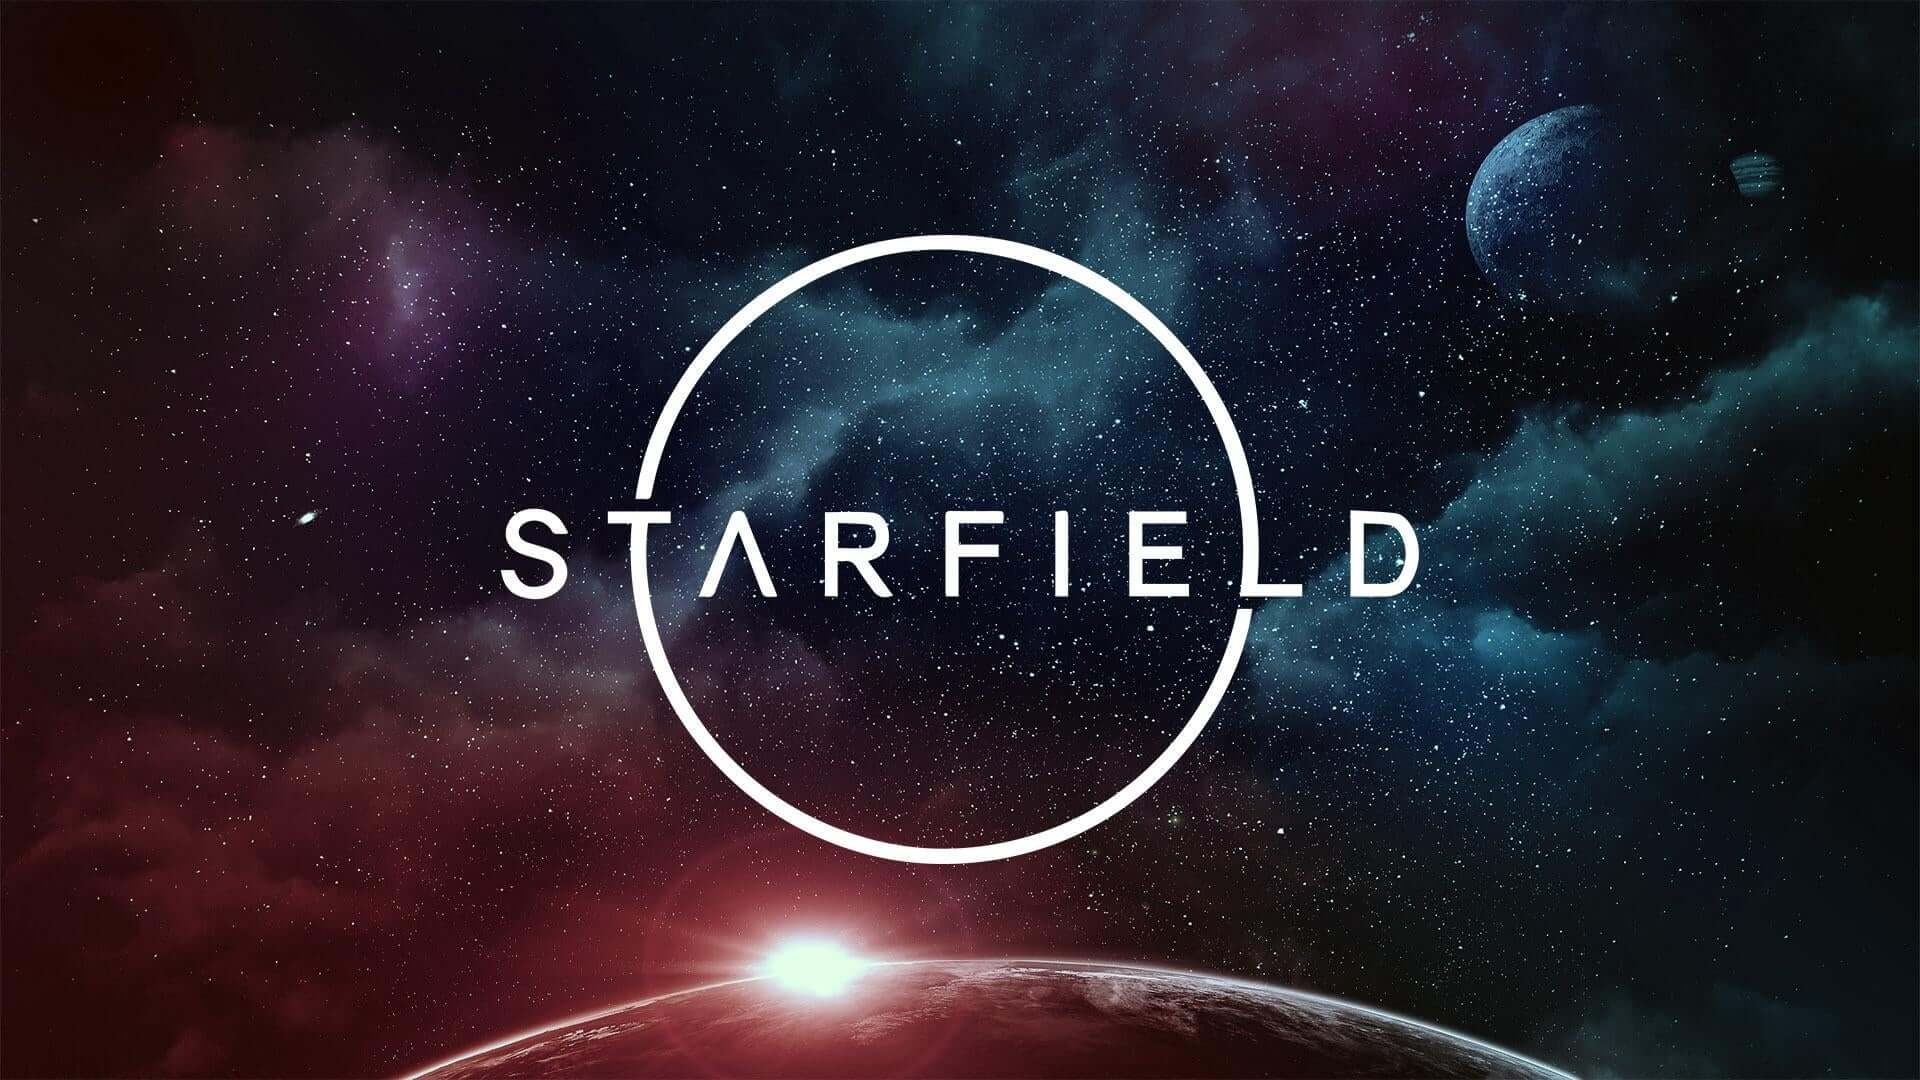 Starfield would launch in 2021